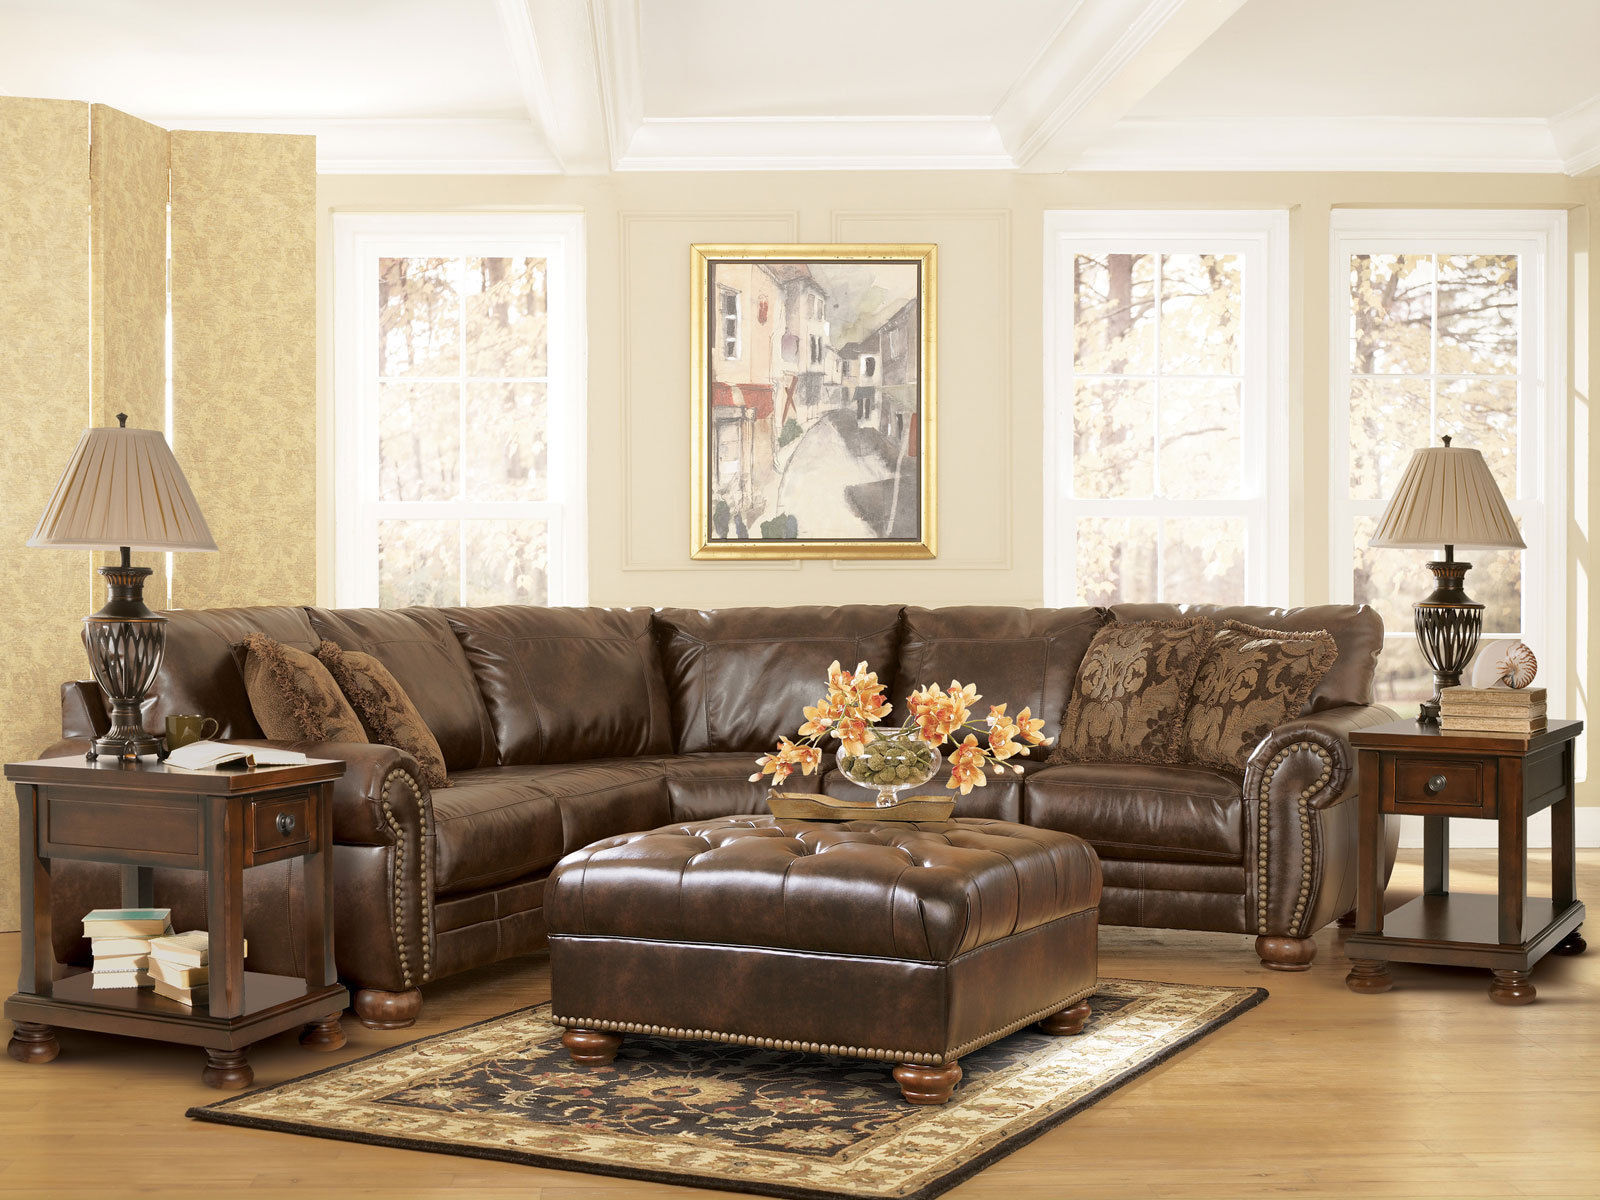 Bradford 2pcs Traditional Bonded Leather Sofa Couch Sectional Set Living Room Sofas